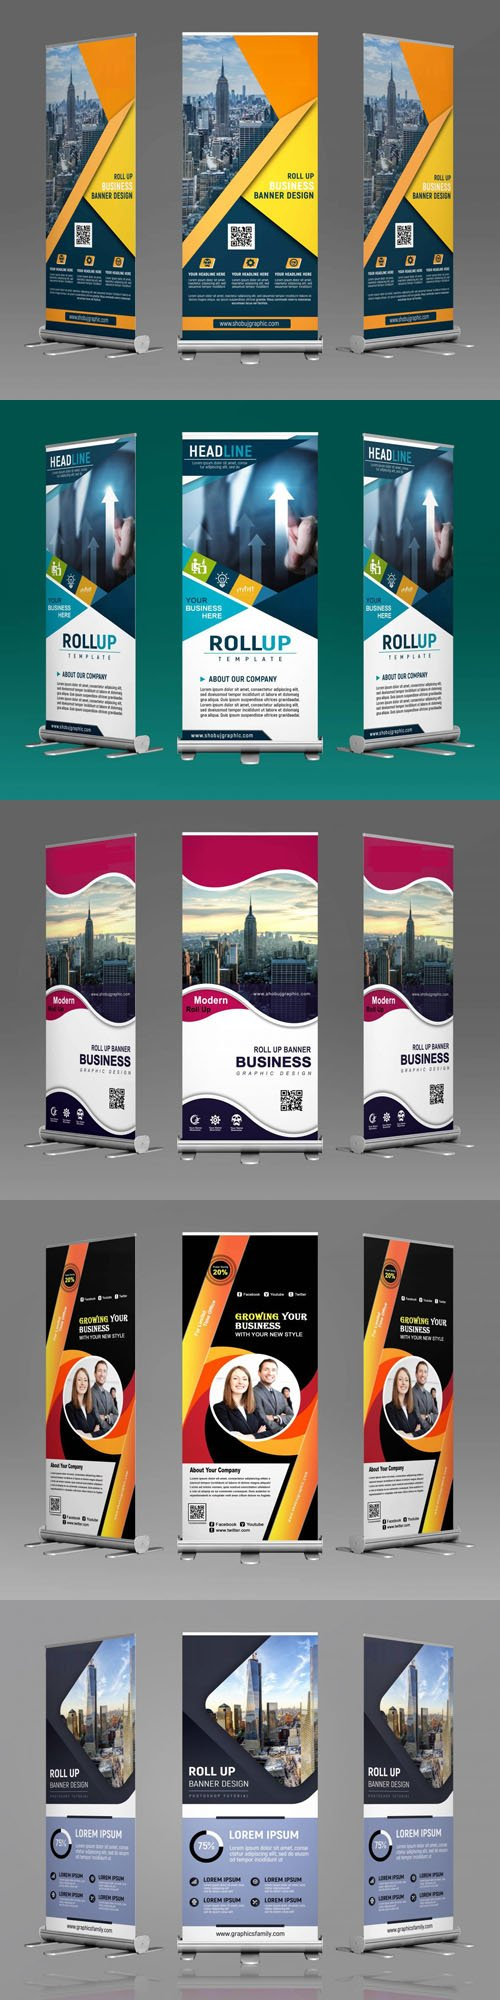 Roll-up Banners PSD Templates